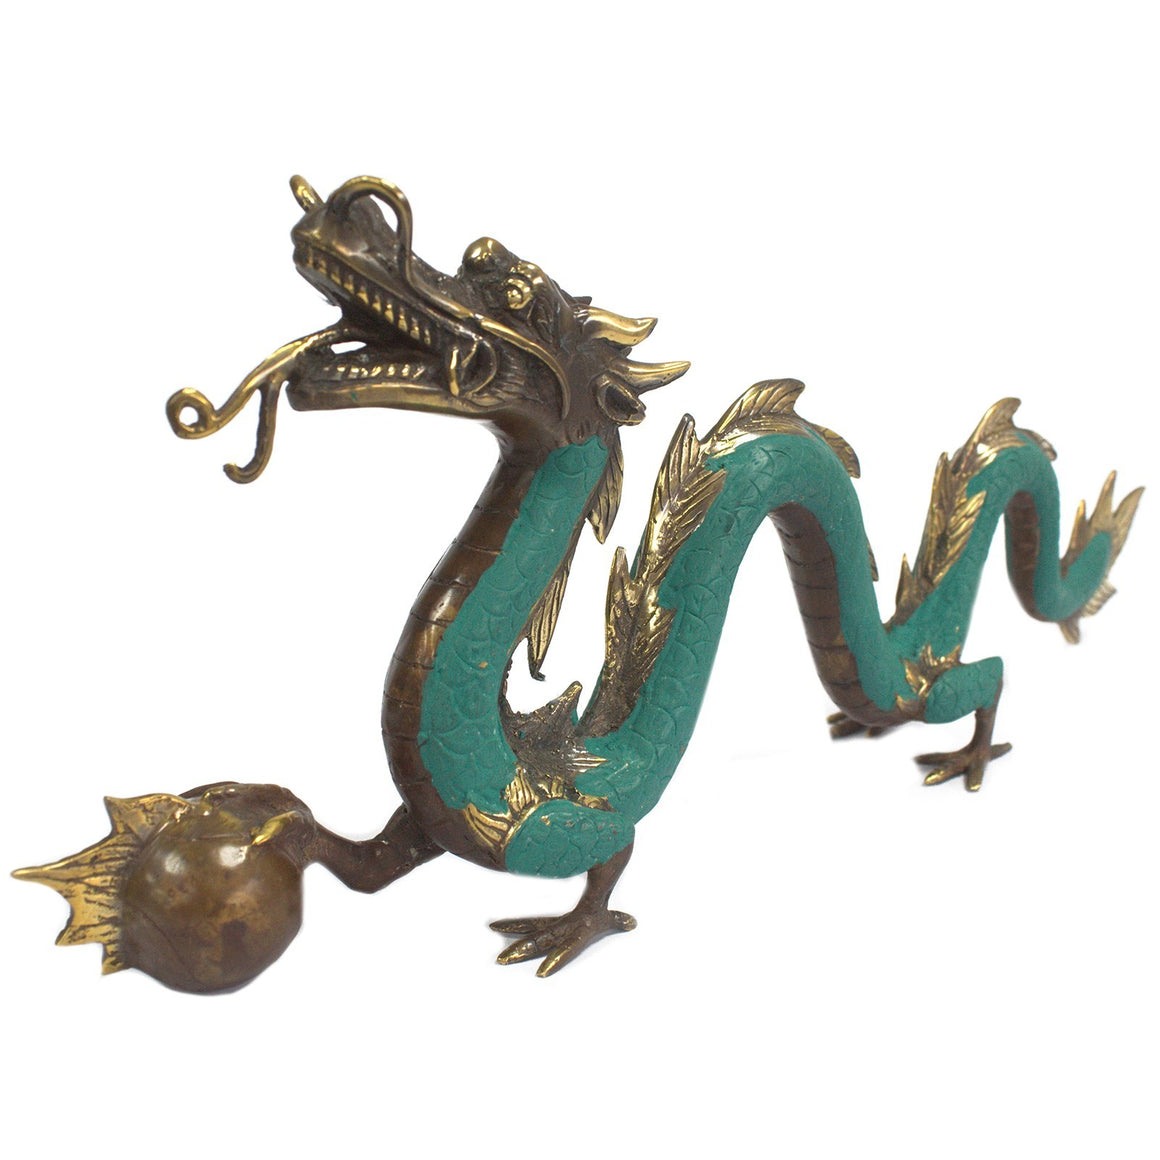 Feng Shui Dragon Brass Figurine - 45cm